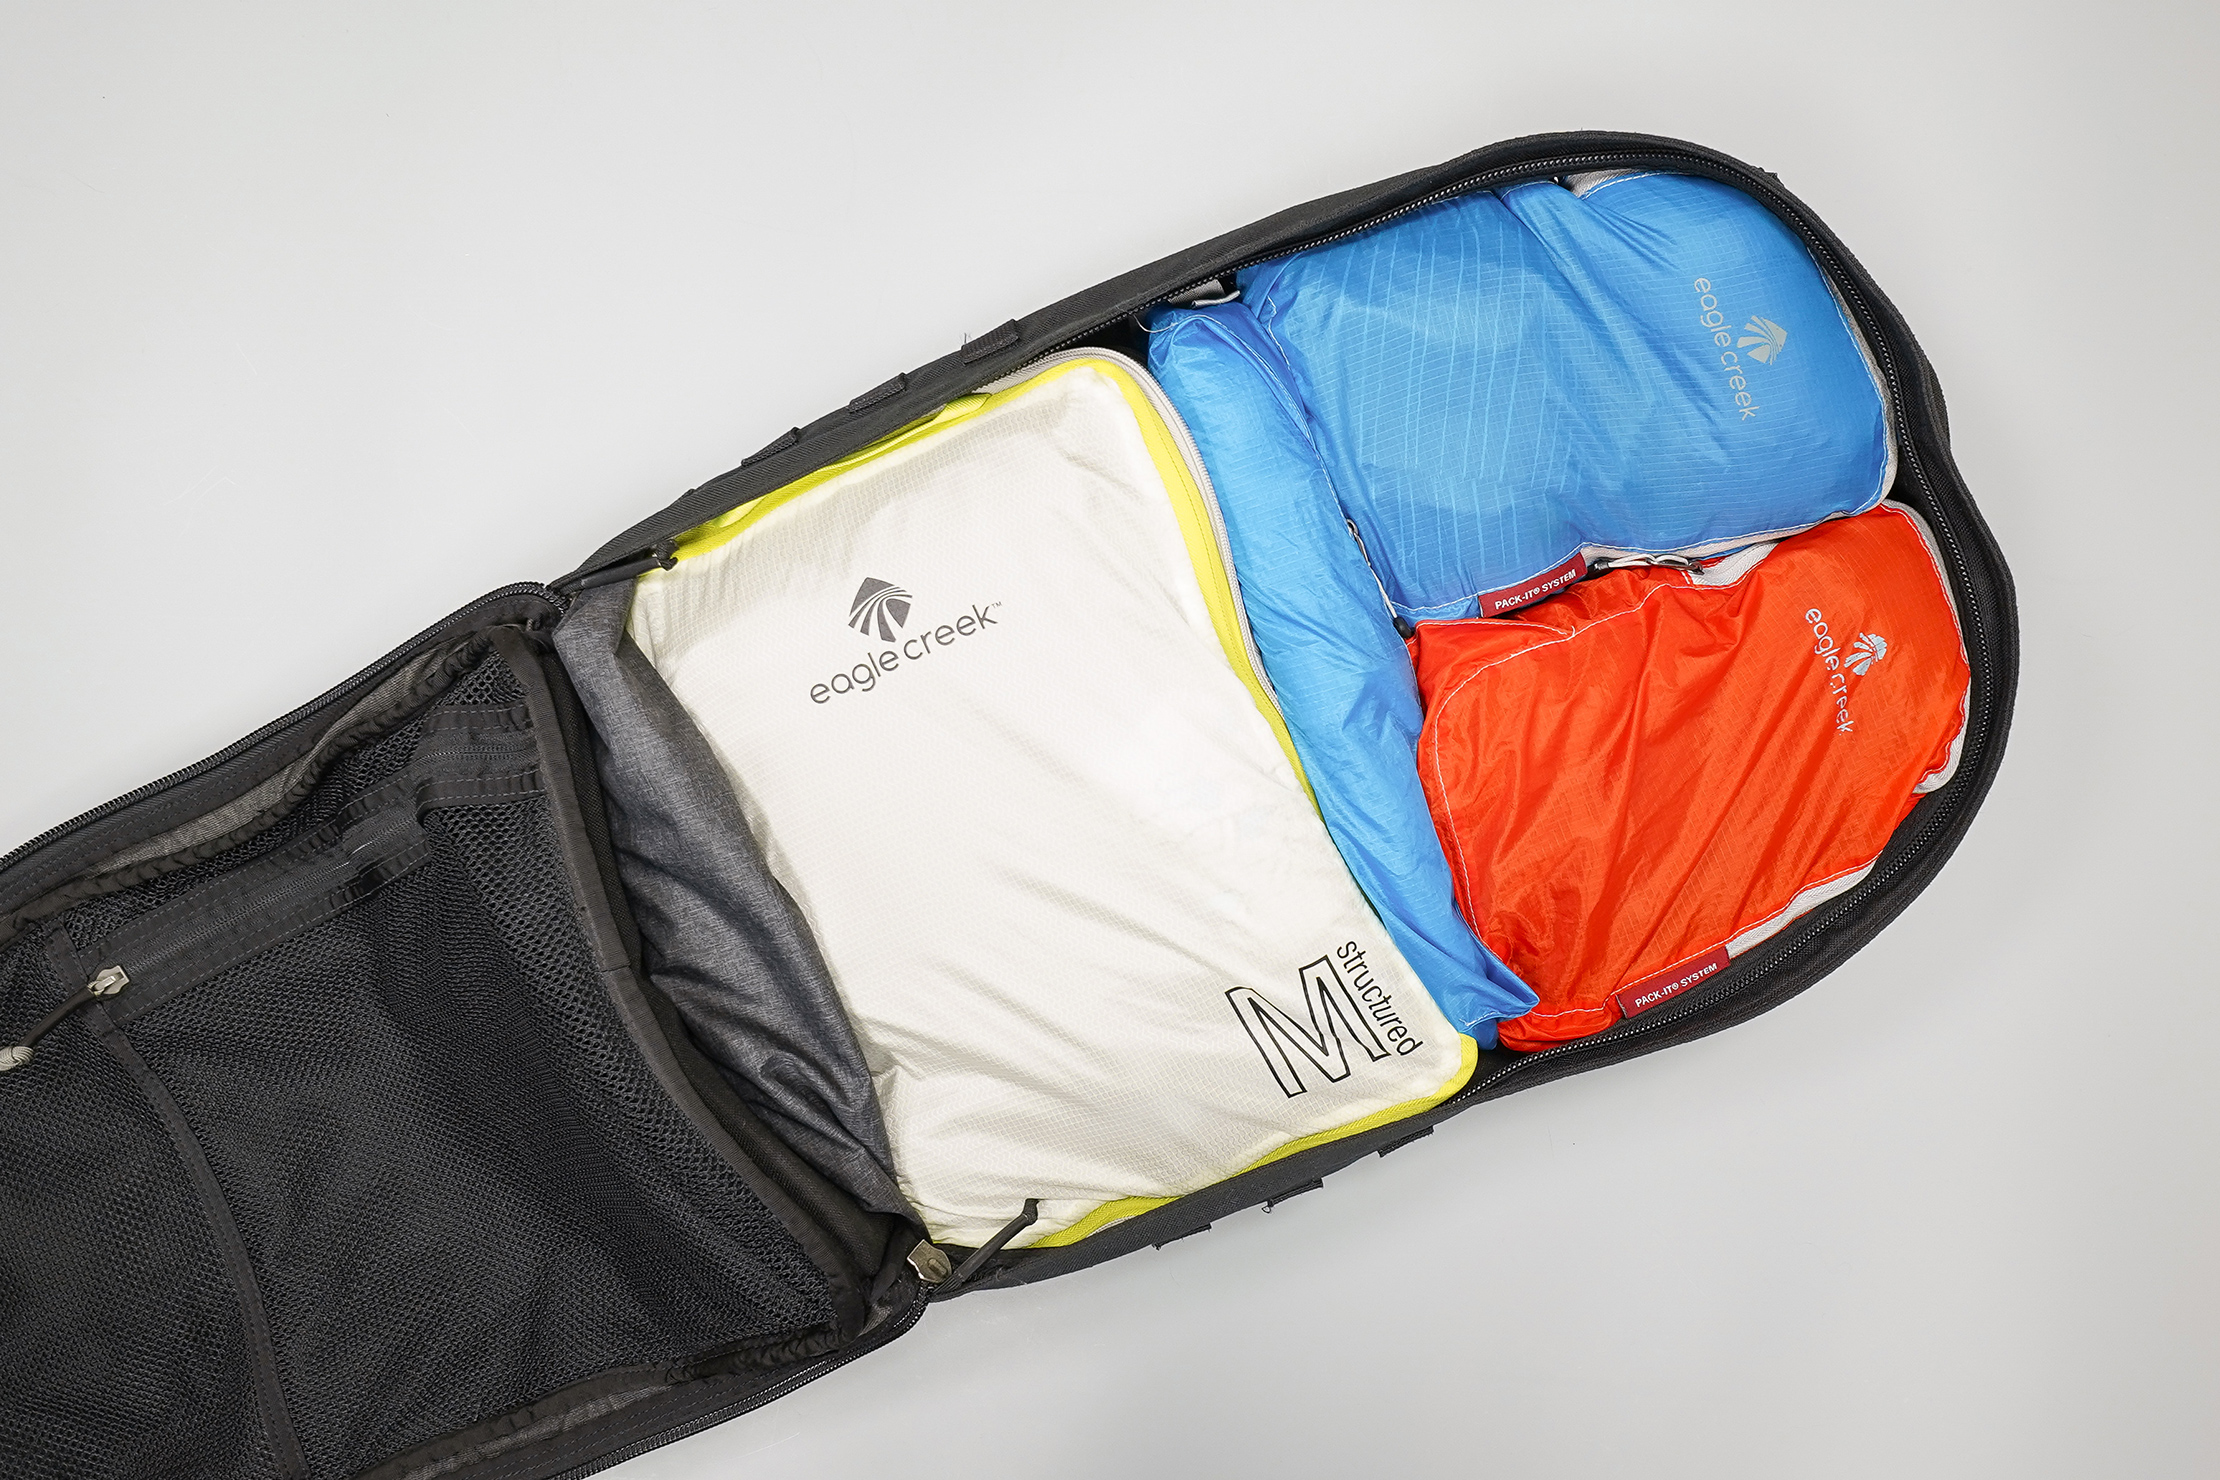 How To Pack a Carry-on Packing Cubes in The Bag